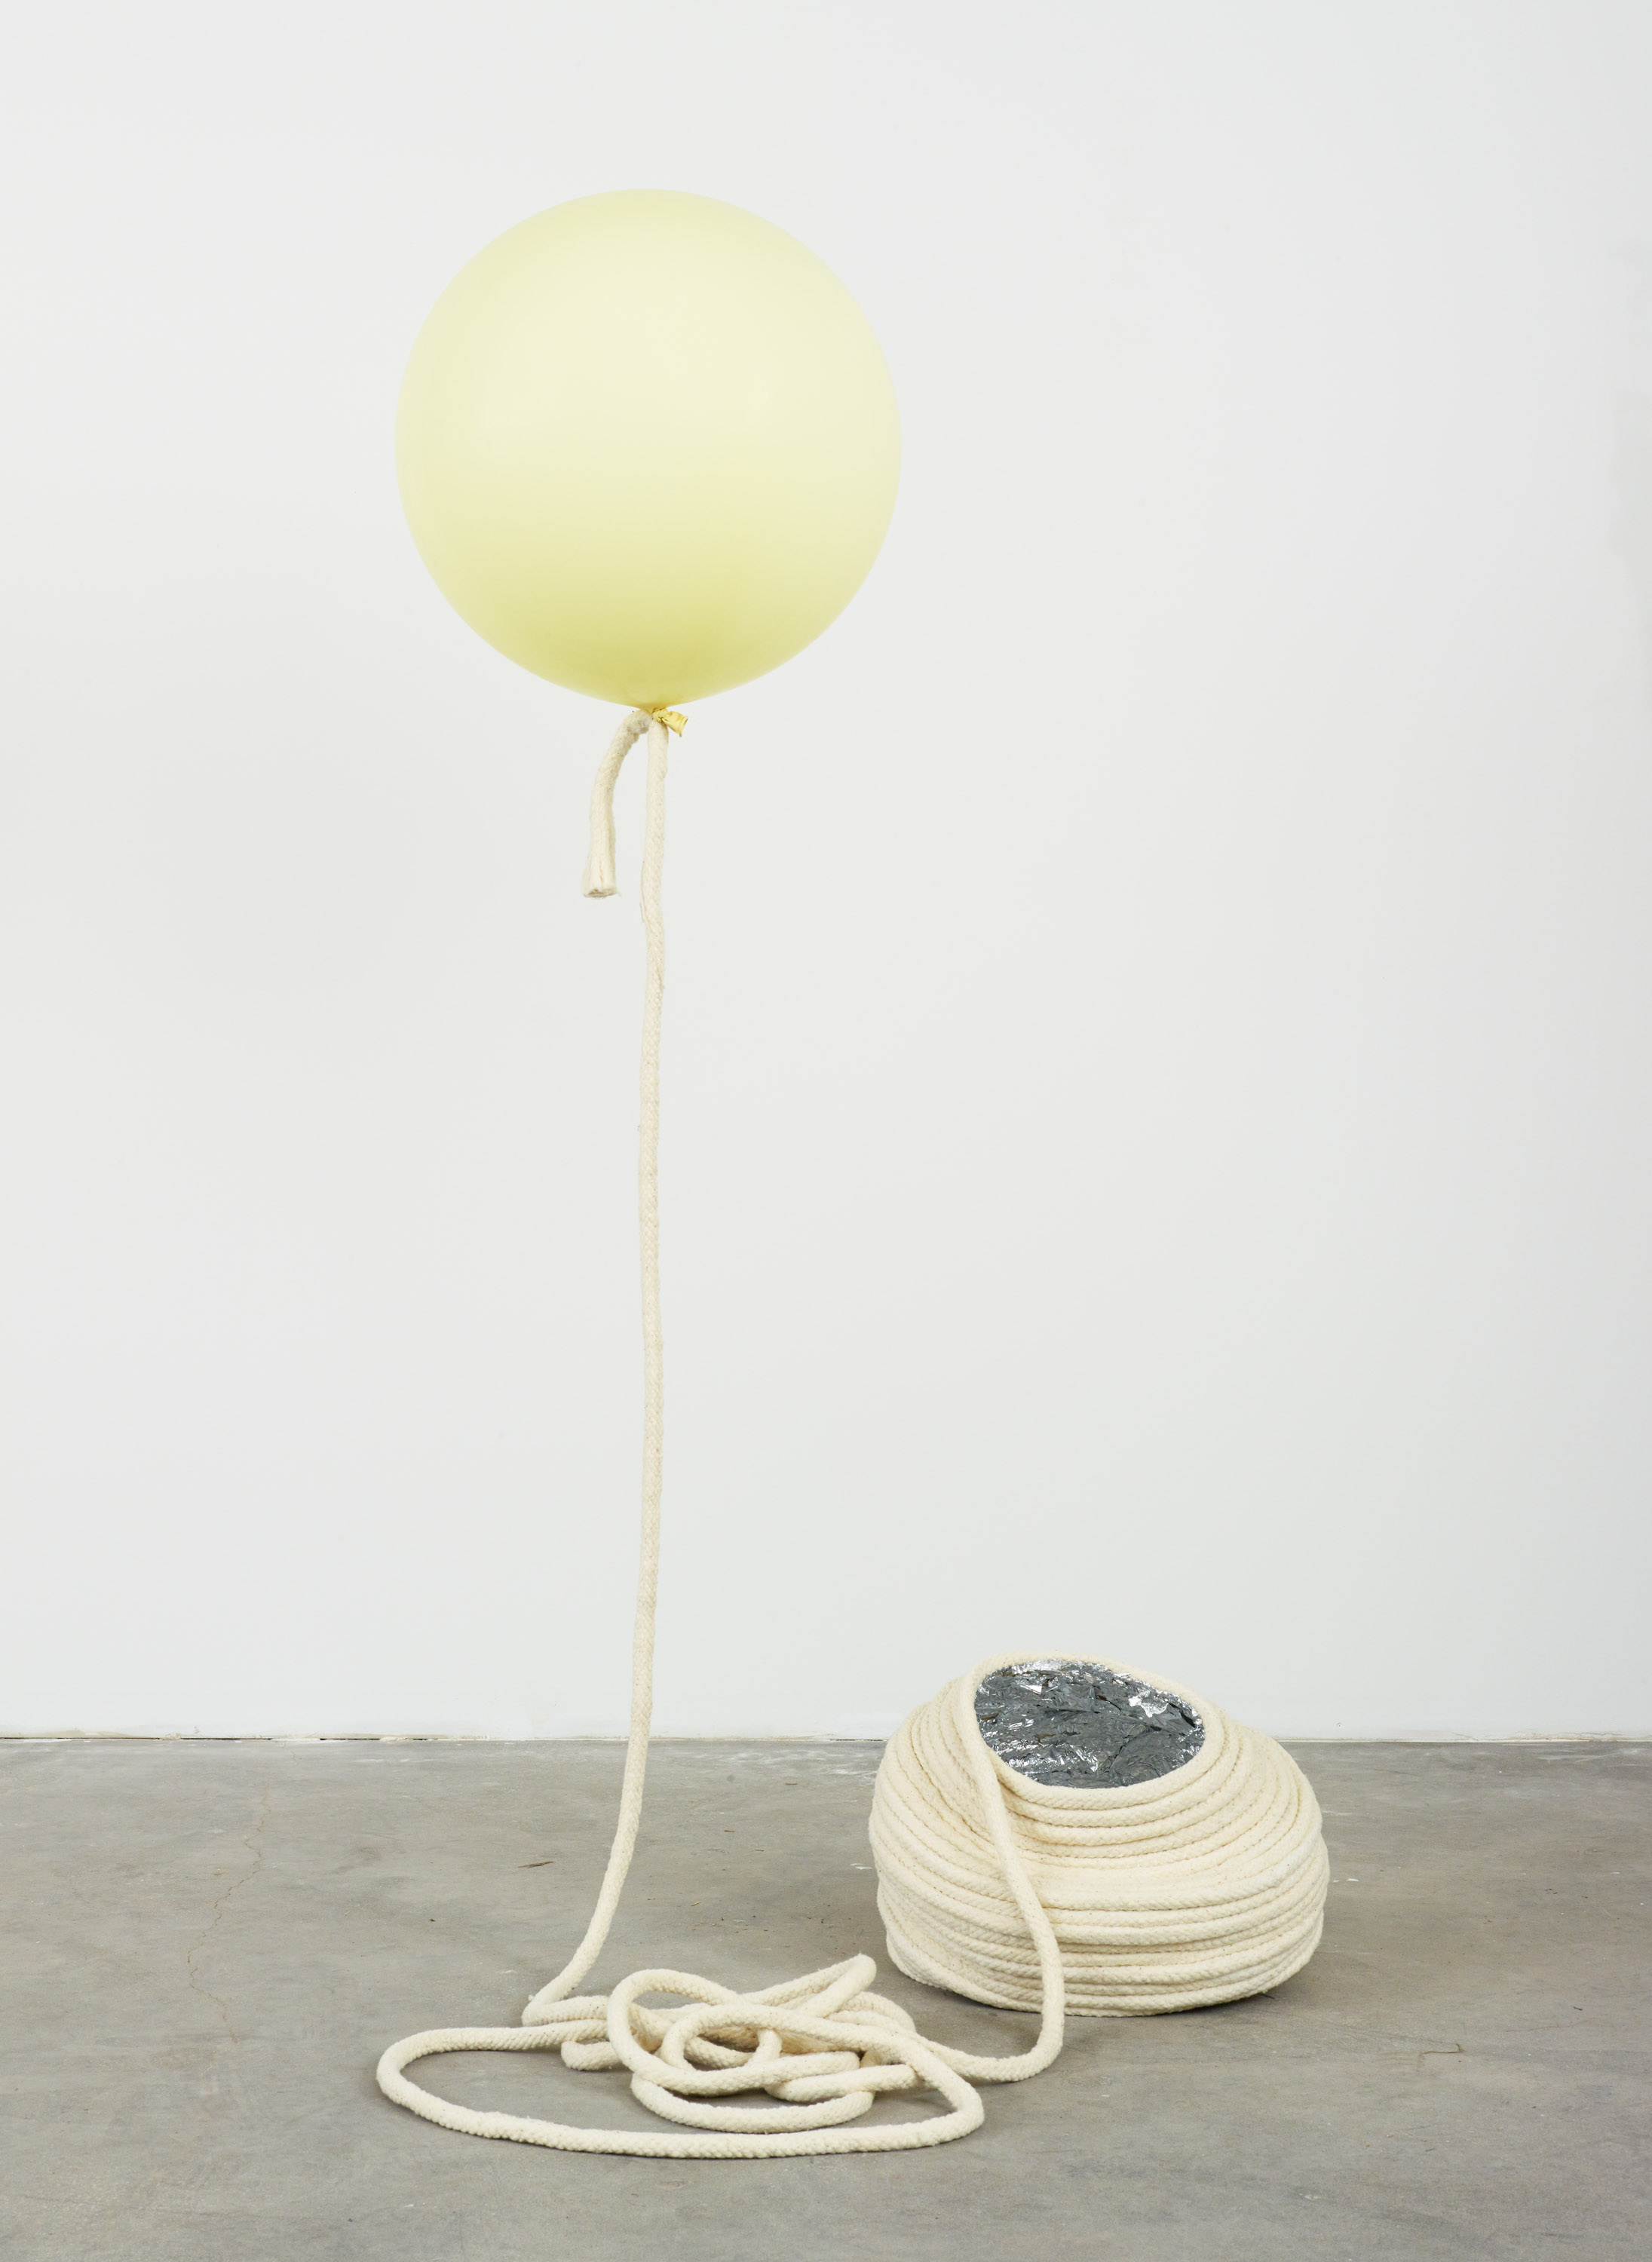 Kathryn O'Halloran  ,    Self portrait from March 2016   , 2016. Wool/cotton trim, aliminium leaf, balloon, helium, 77 x 40 x 38 inches.